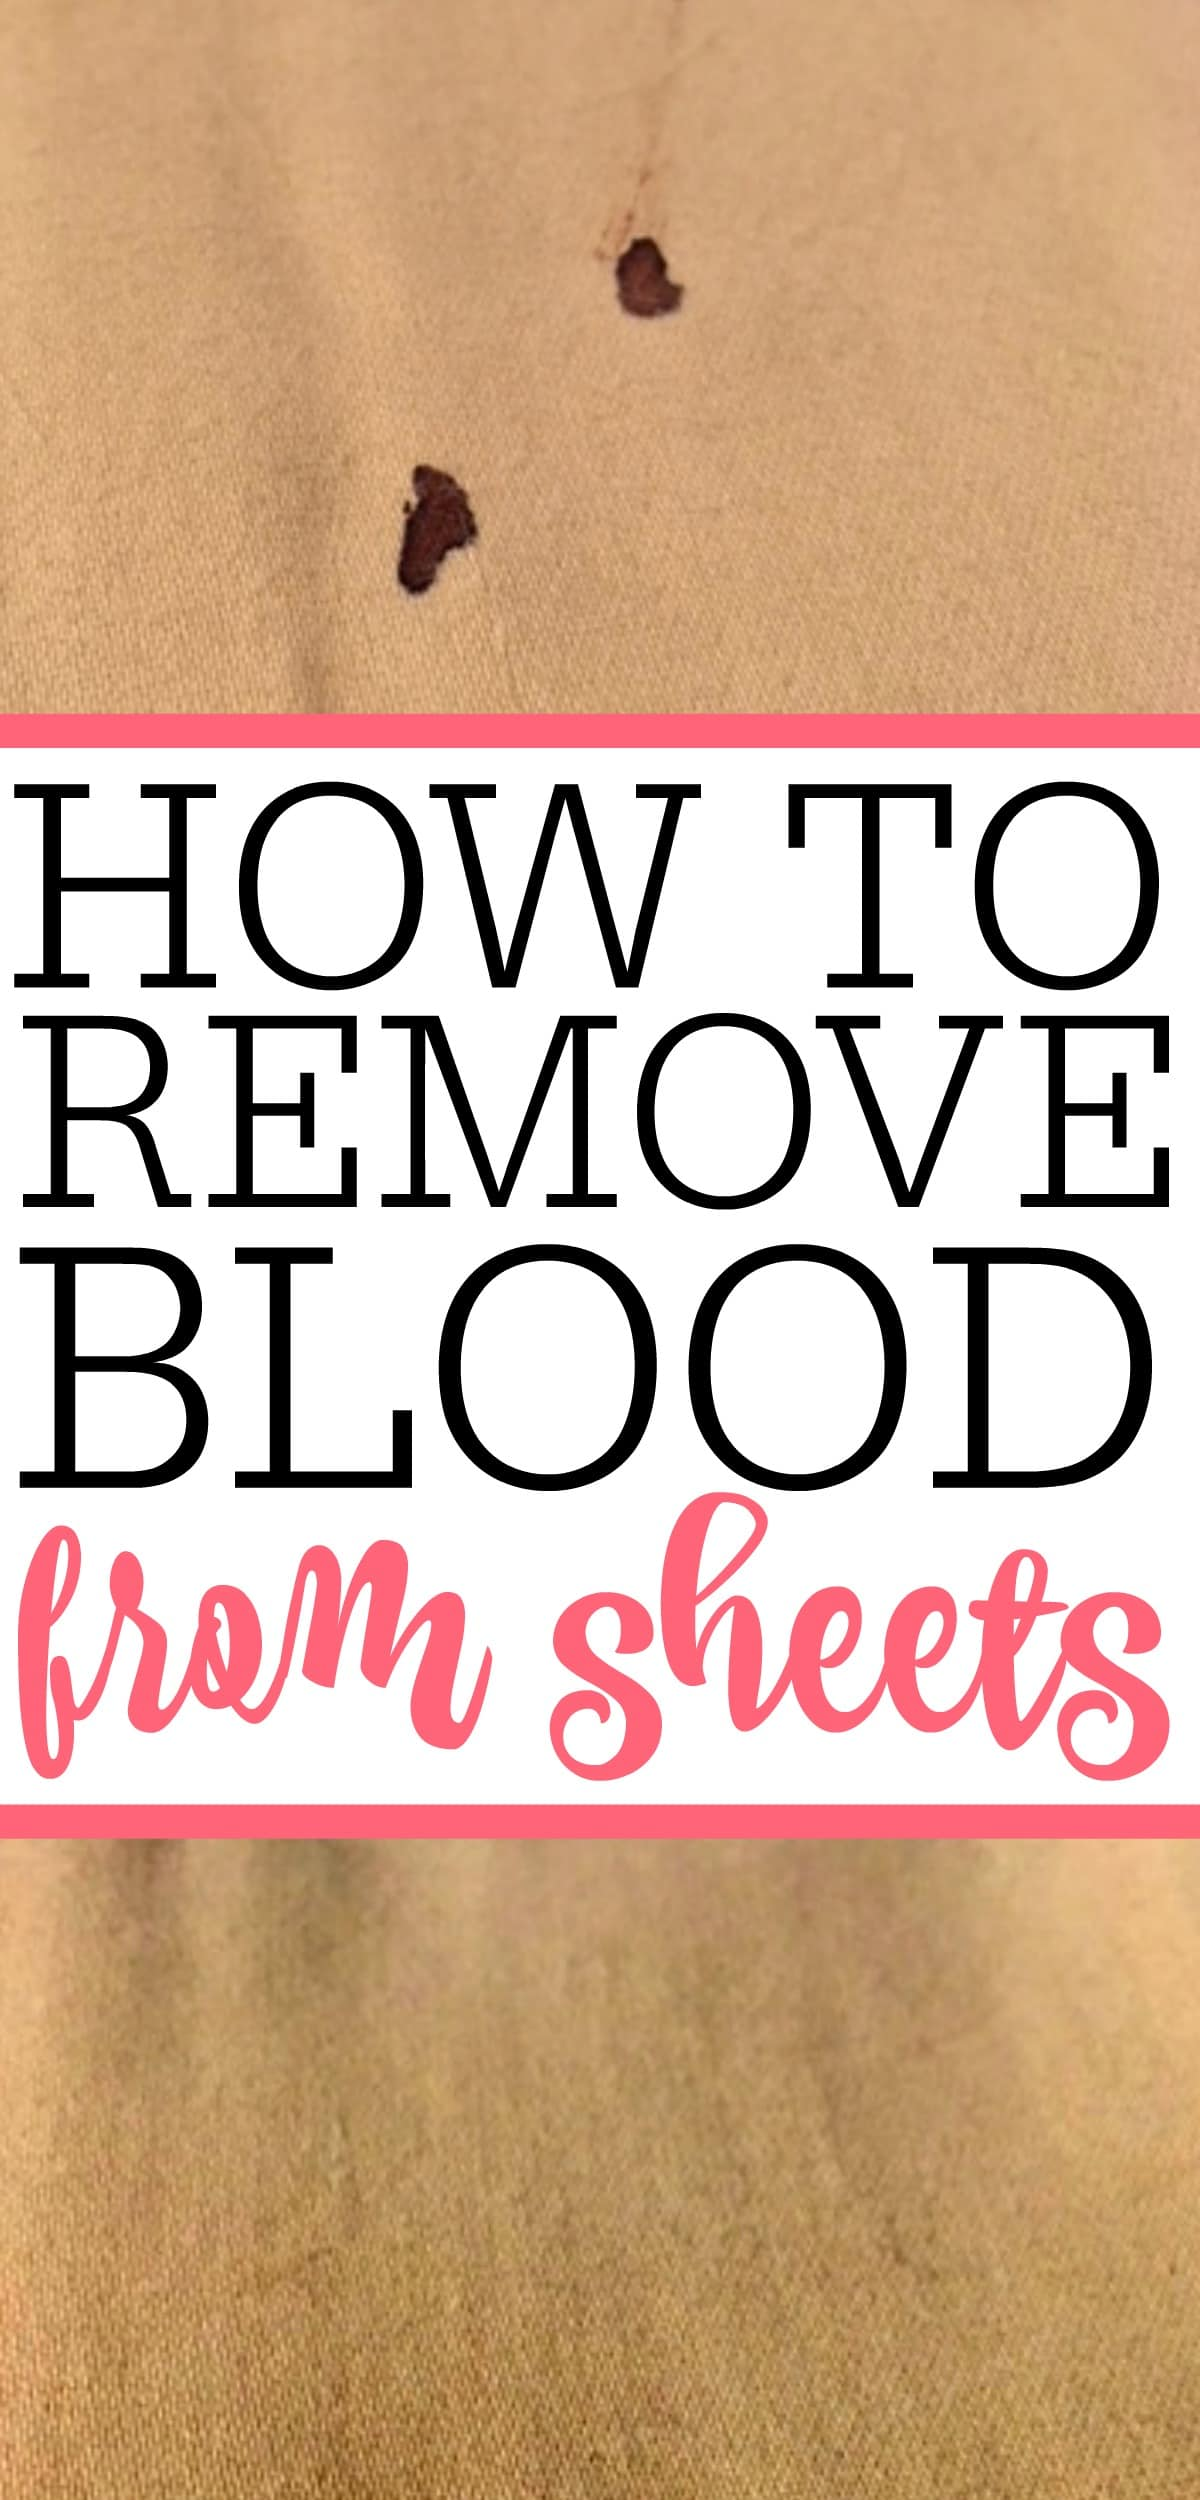 How To Get Dry Blood Stains Out Of White Clothes